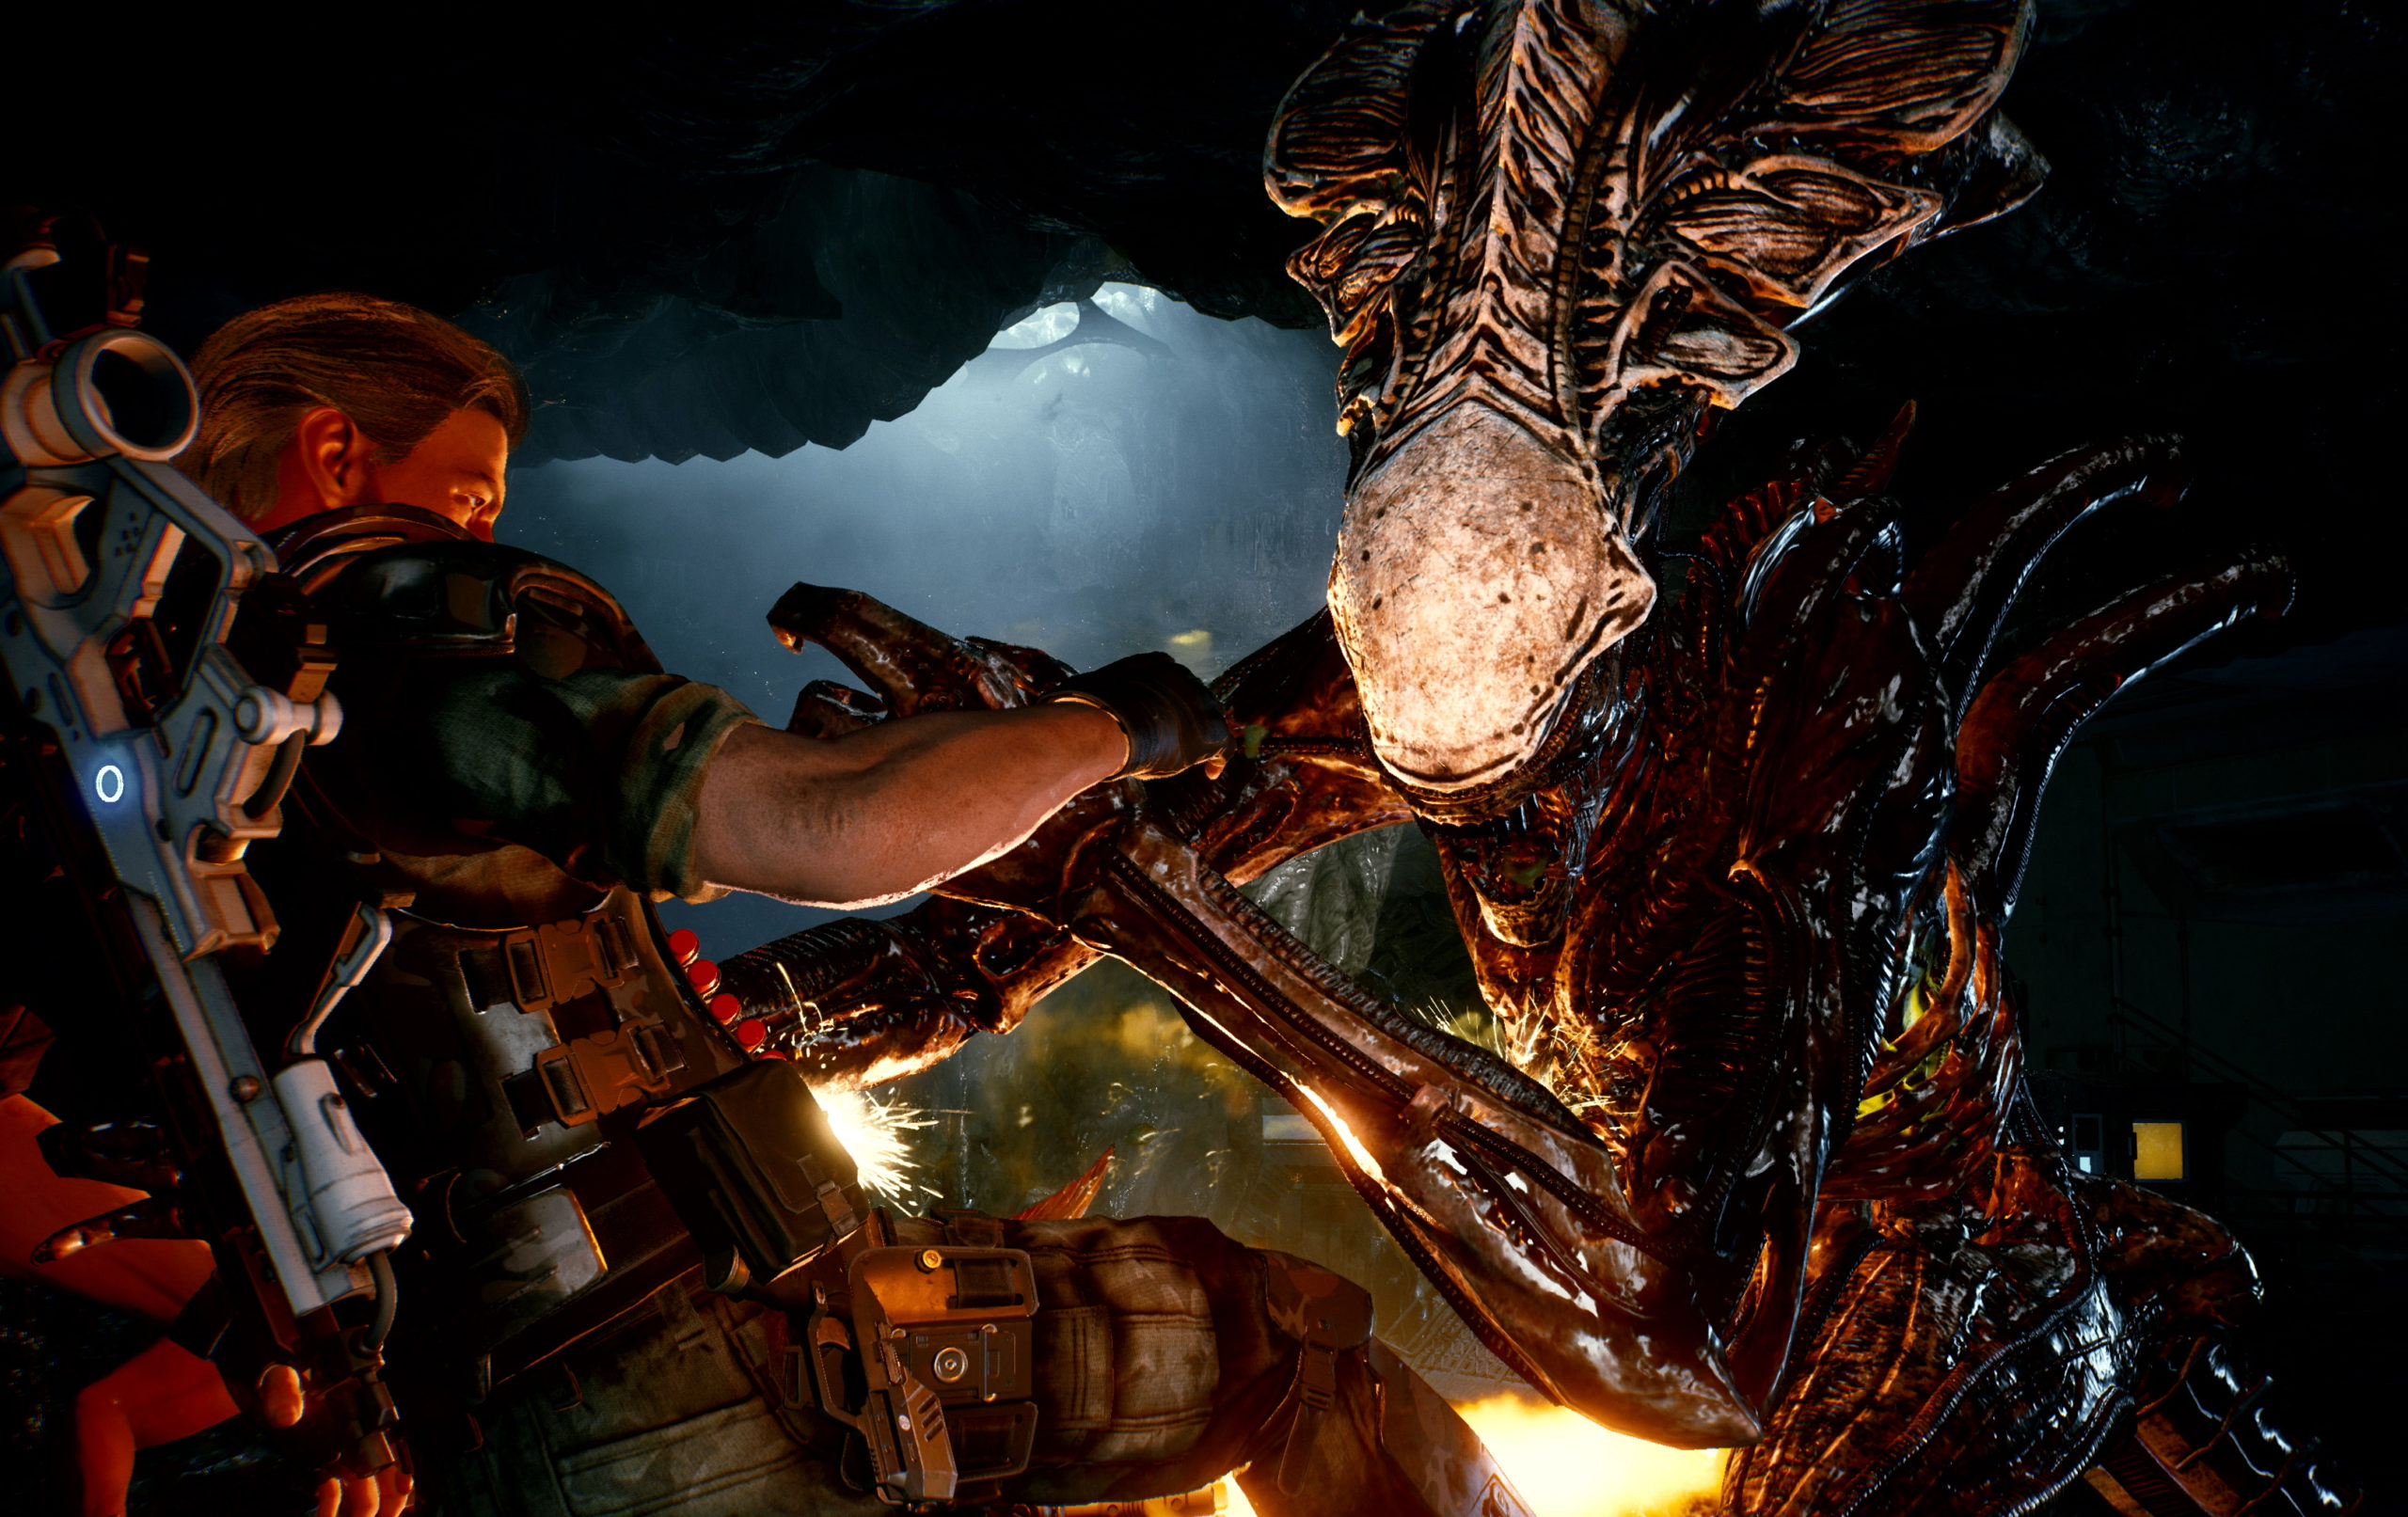 Preview] 'Aliens: Fireteam' is Taking Players on Another Bug Hunt - Bloody  Disgusting